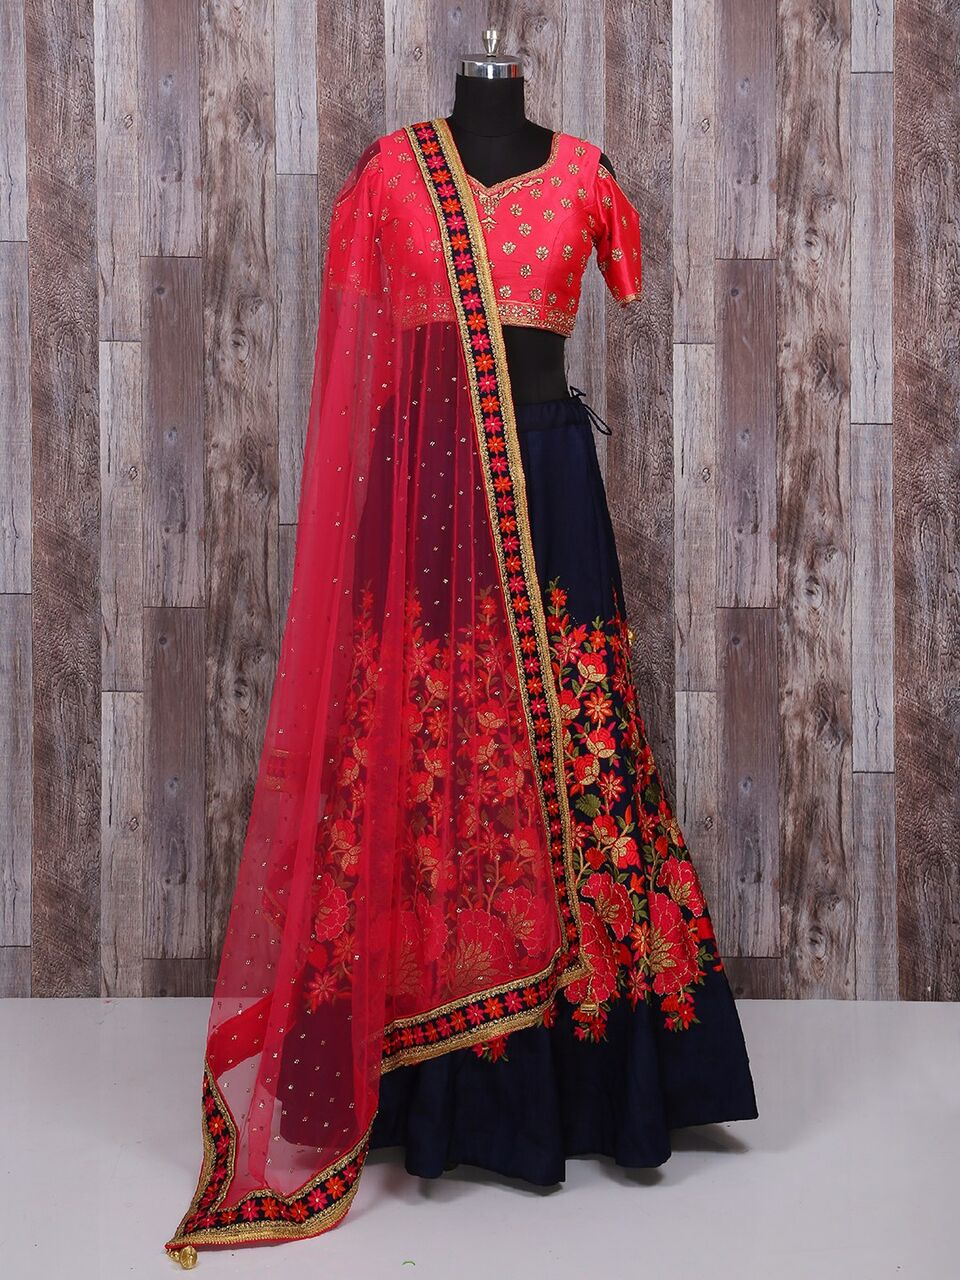 Navy Blue Floral Embroidered Indian Chaniya Choli Designs